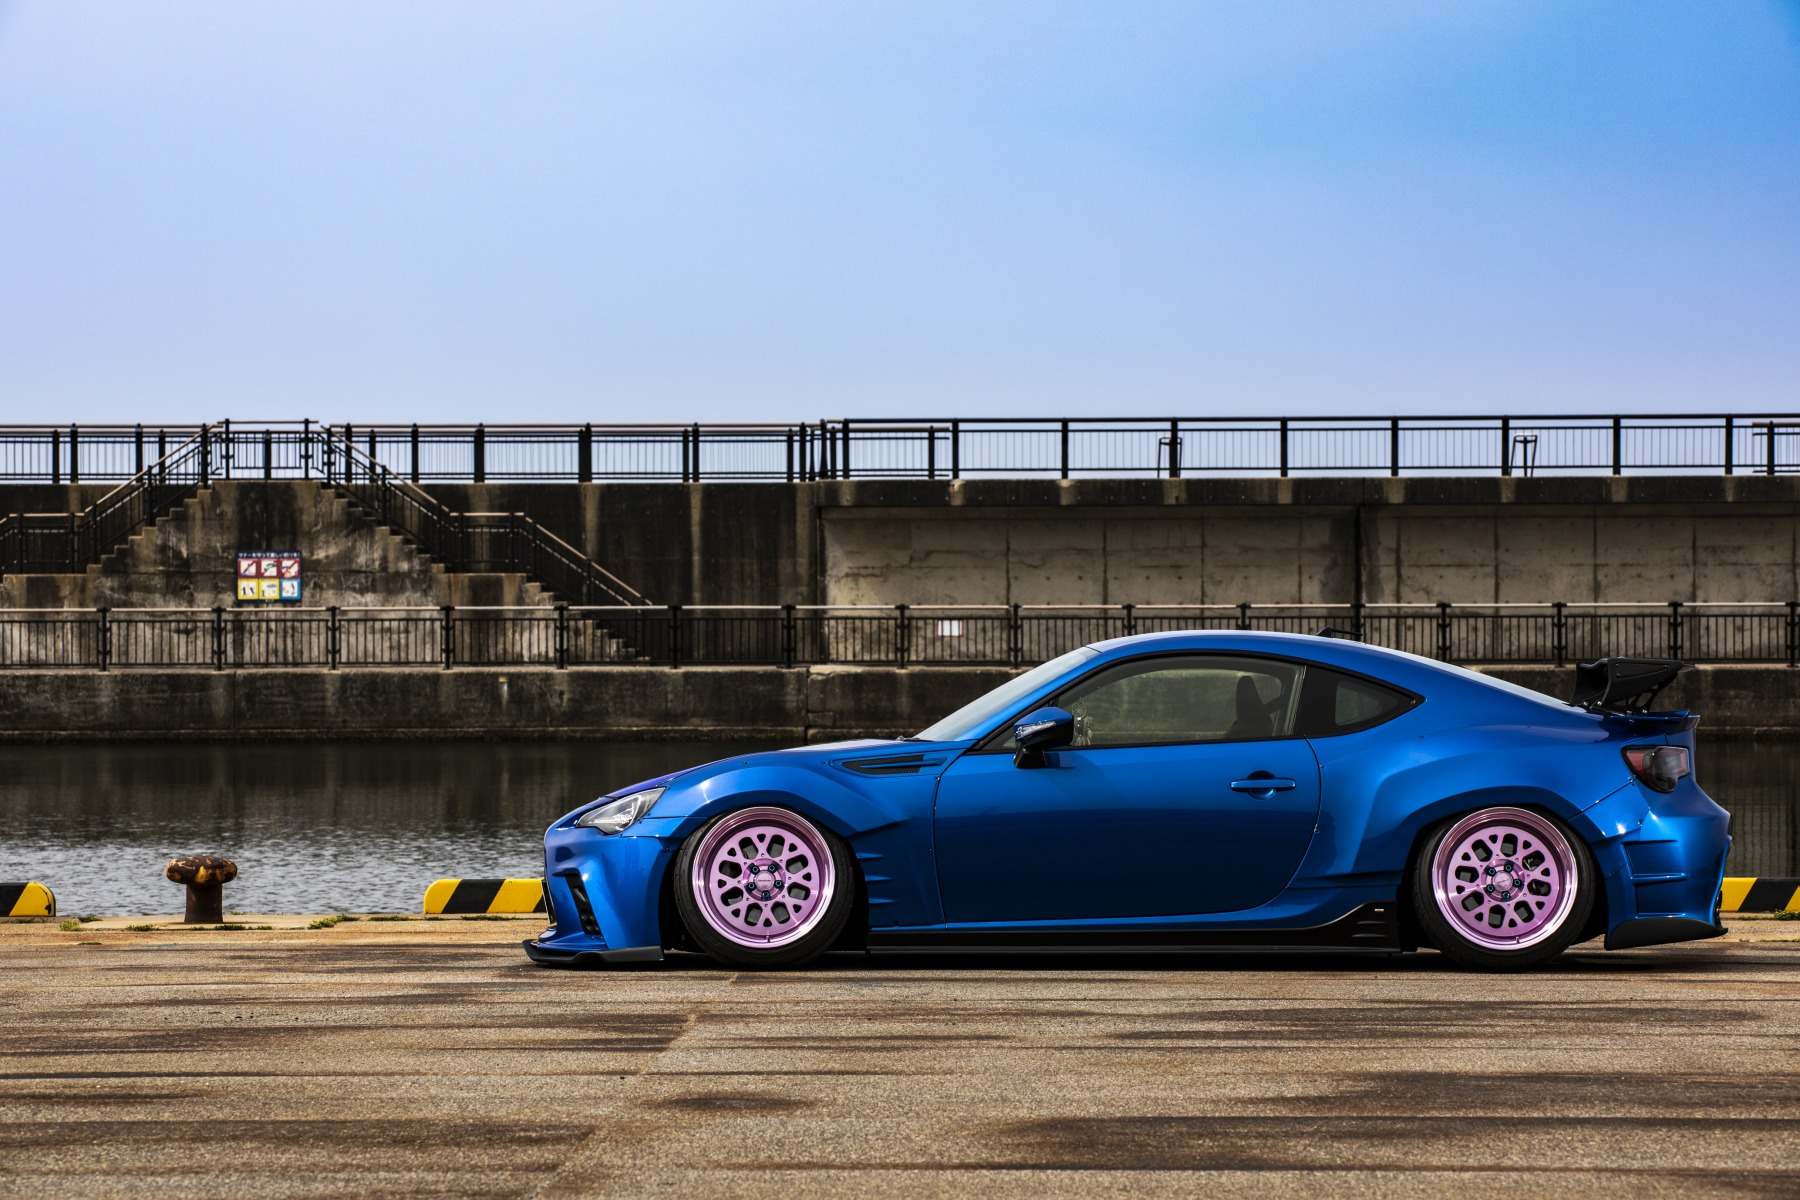 SUBARU BRZ airsuspension bagged airforcesuspension エアサス Hardline パイピング カスタム